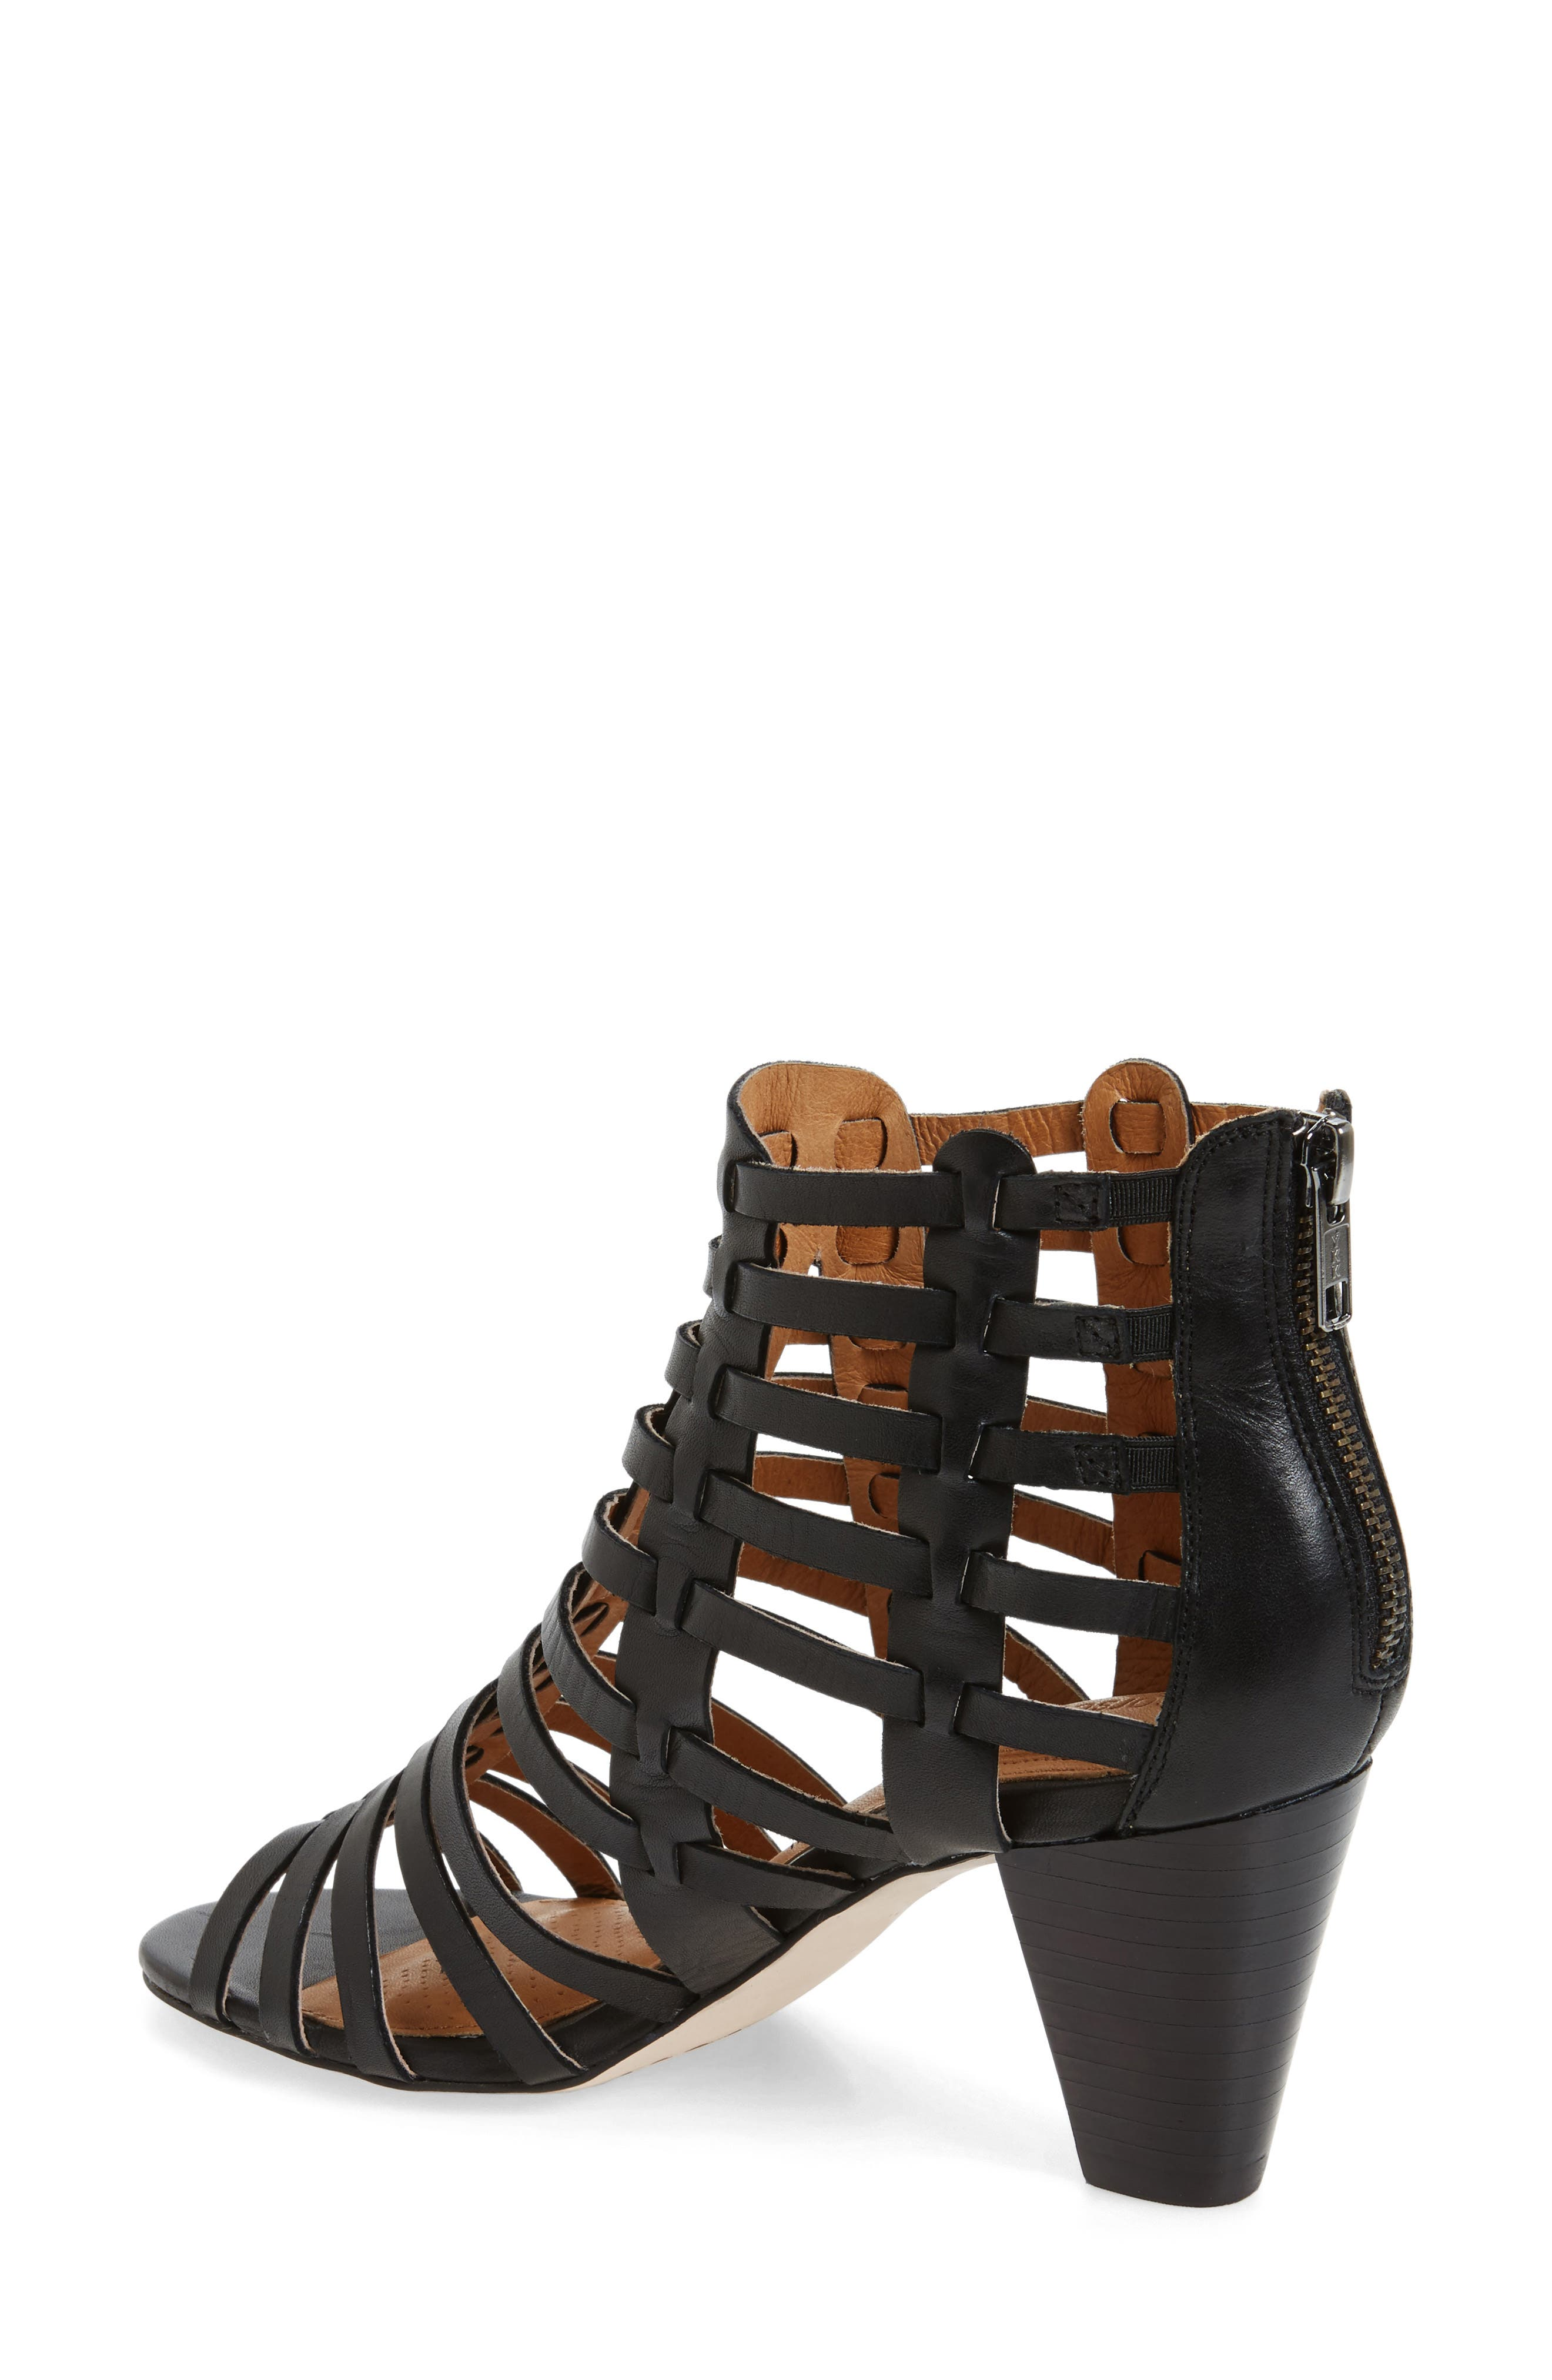 Cour Cage Sandal,                             Alternate thumbnail 2, color,                             001